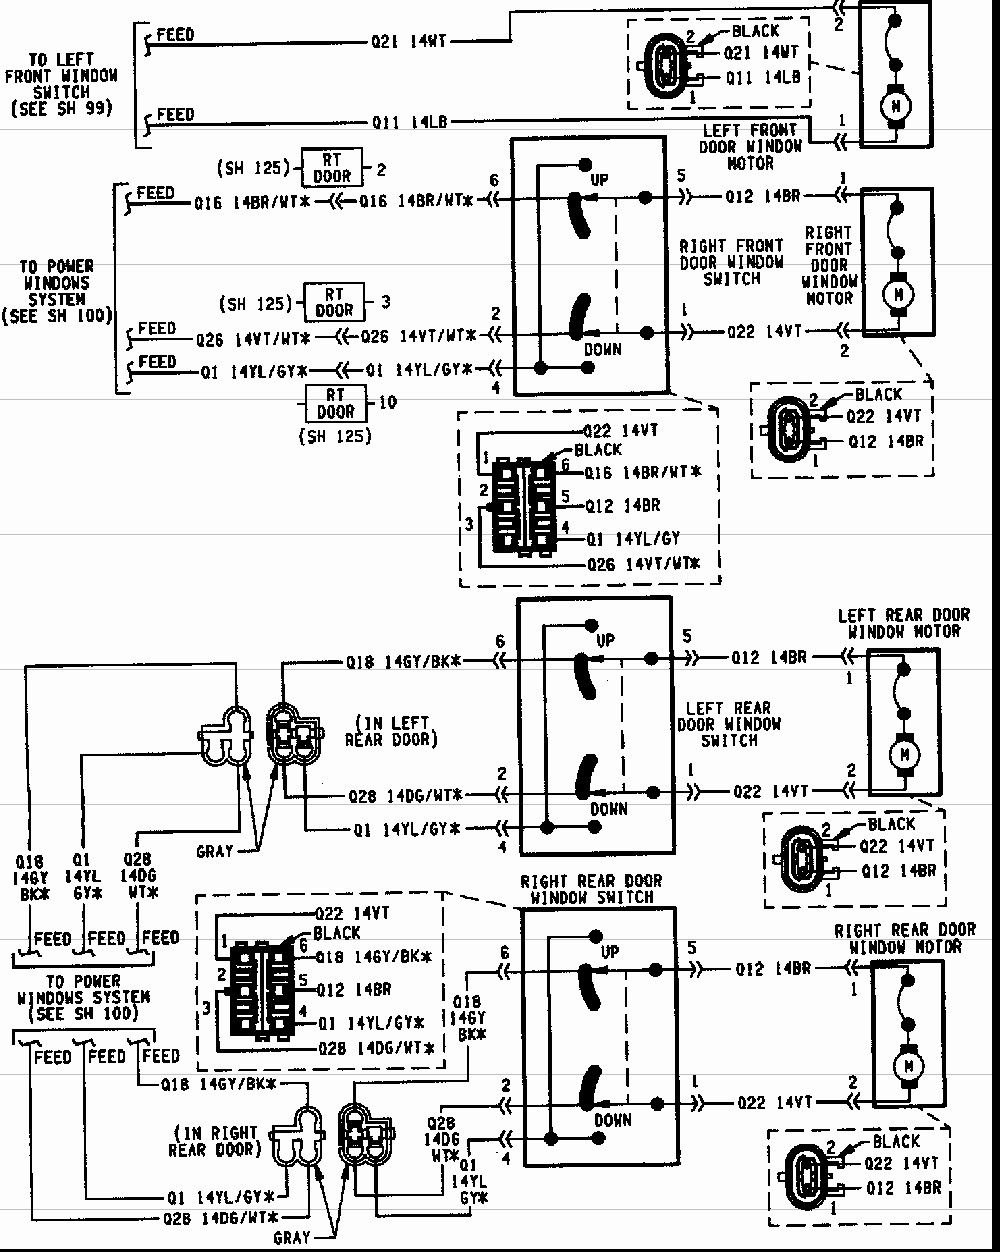 Inspirational 2005 Jeep Liberty Wiring Diagram in 2020 ...